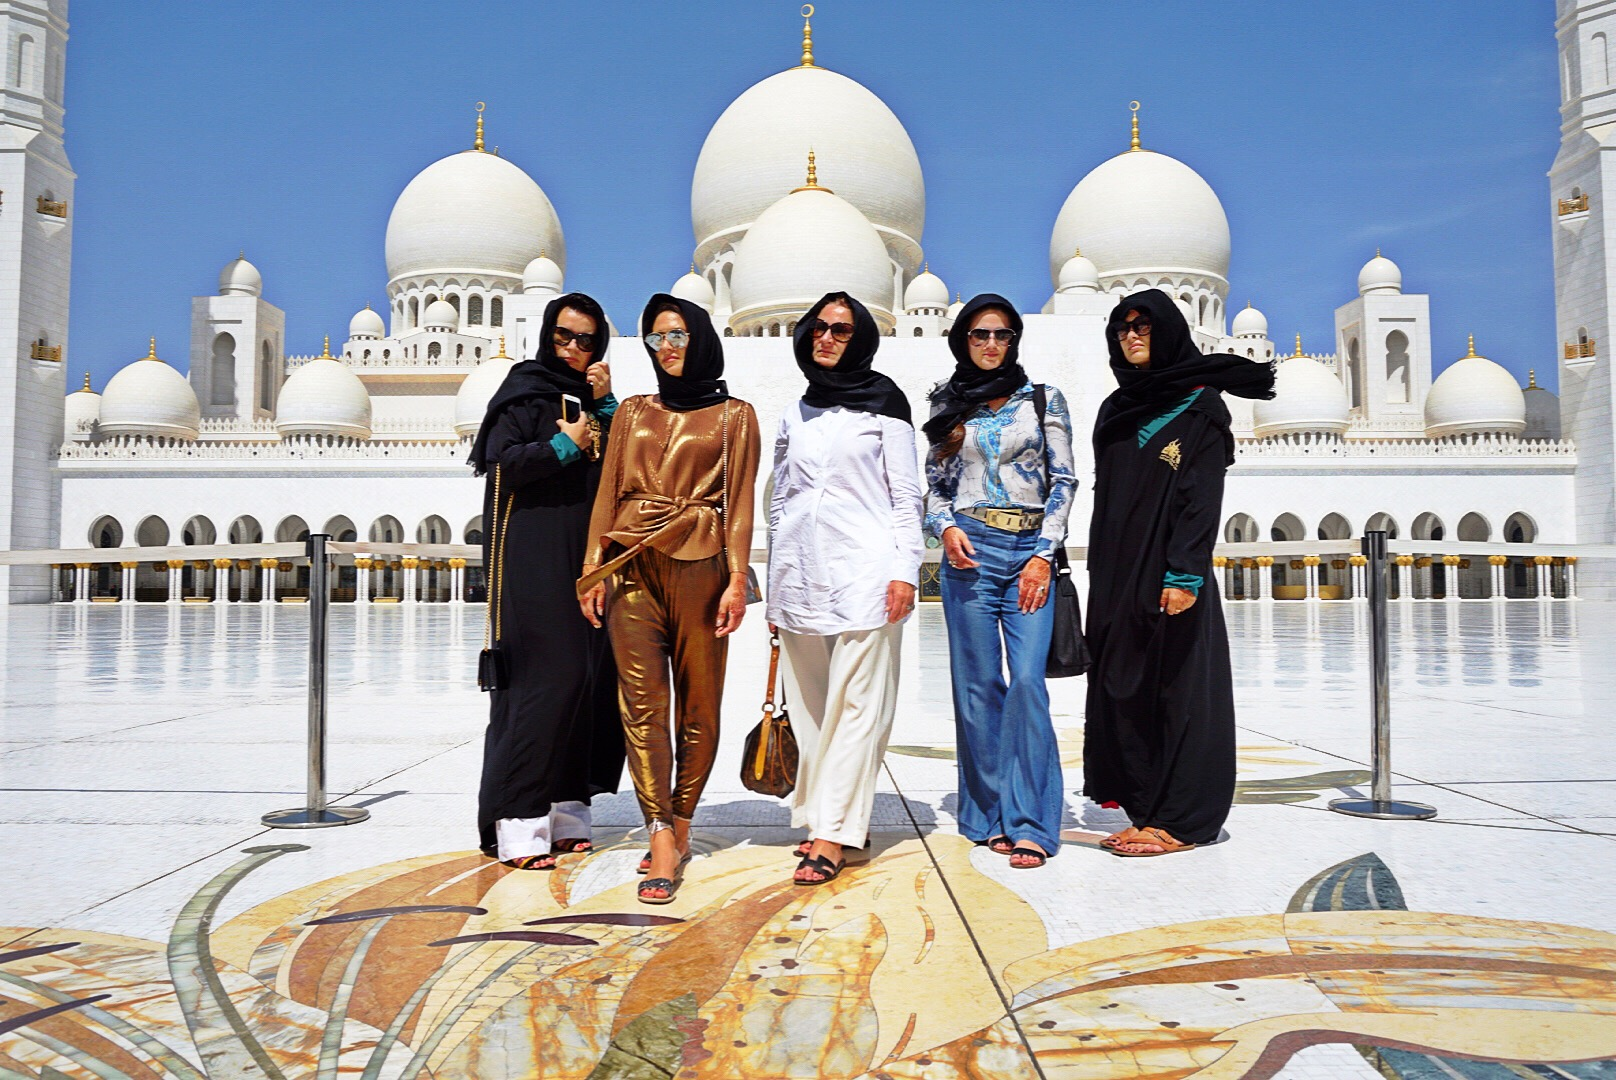 girls-outside-mosque-habibis-arabian-princesses